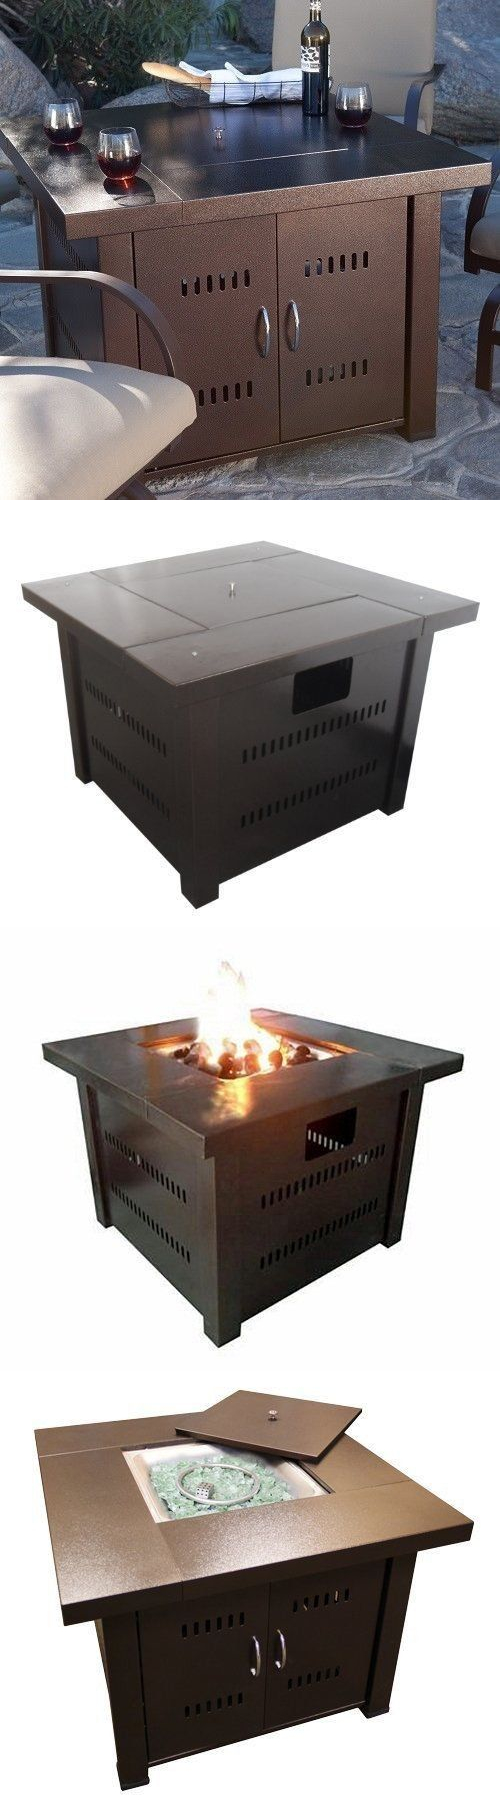 Fire pits and chimineas propane fire pit table outdoor patio